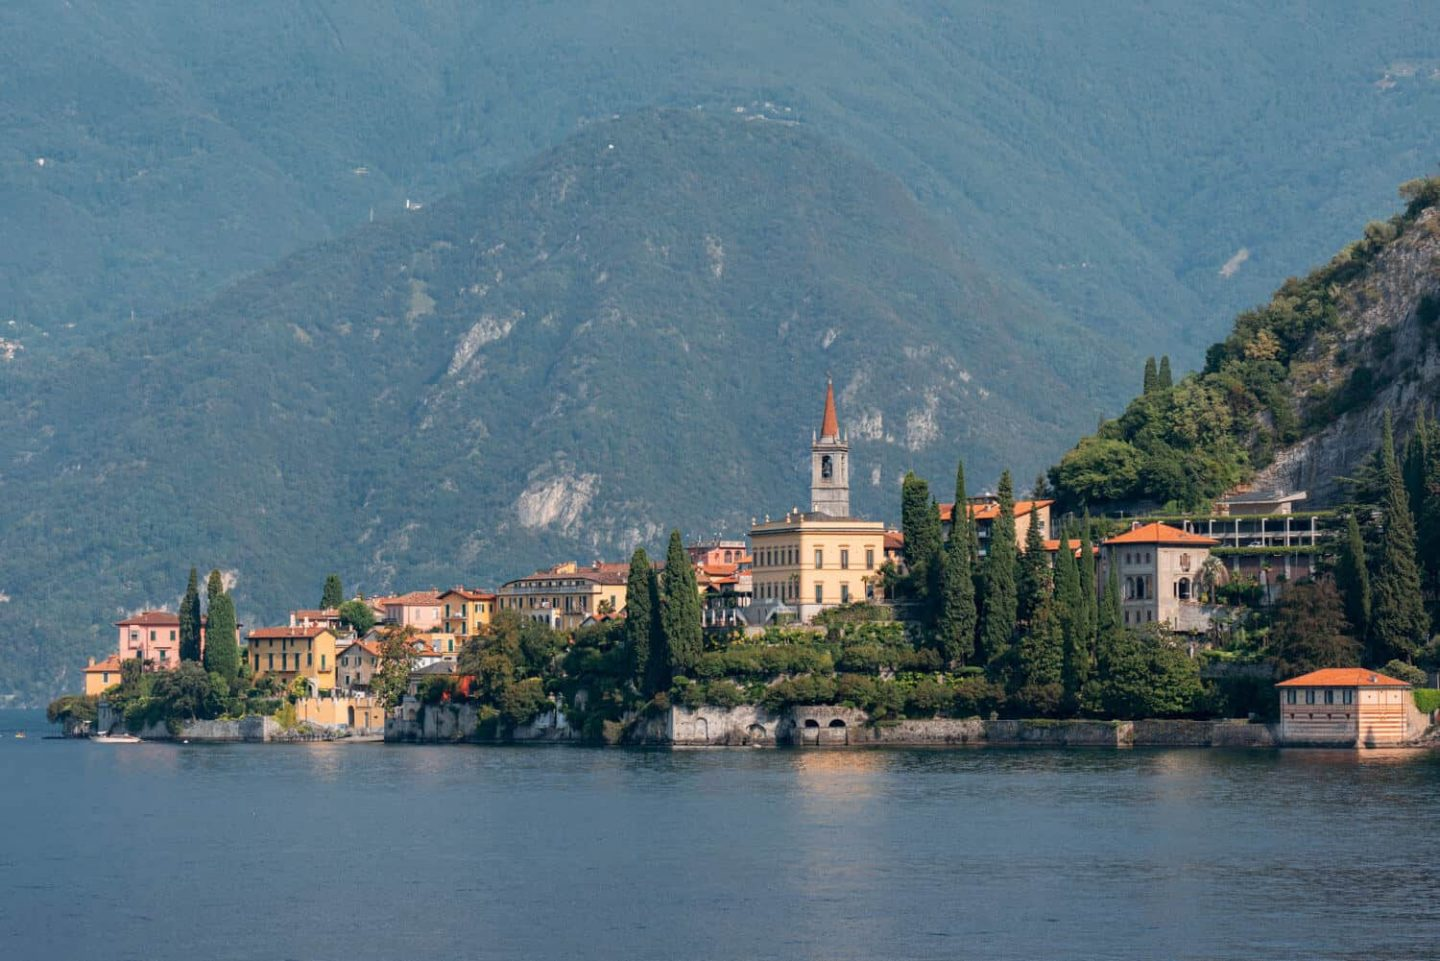 Colourful town of Varenna of Lake Como against a backdrop of mountains.  The most beautiful town on a day trip Milan to Lake Como